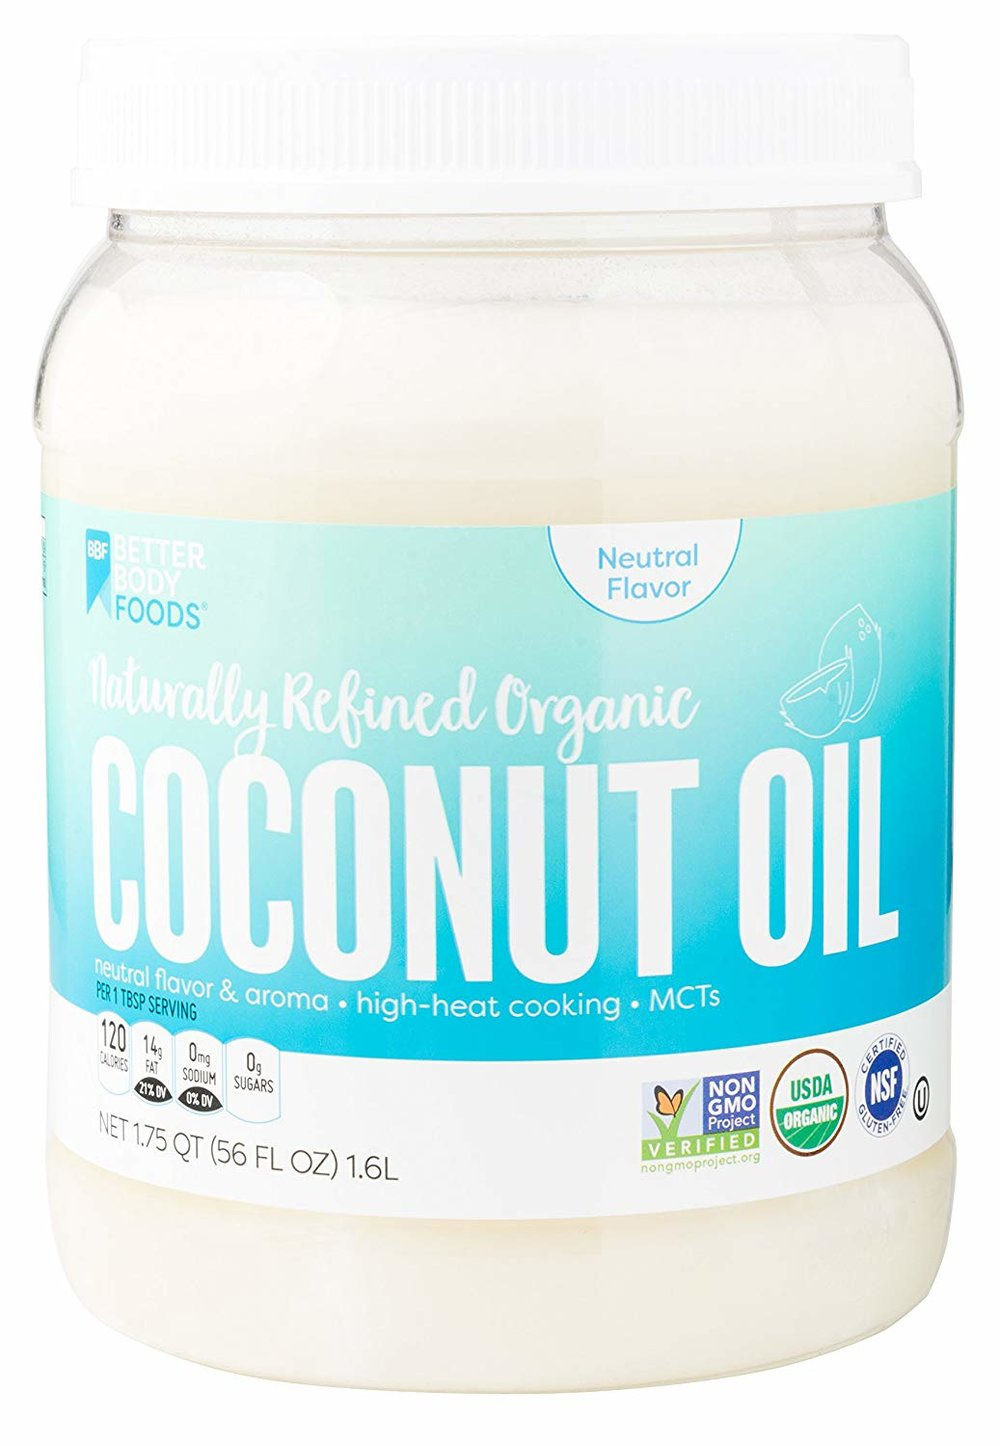 refined coconut oil.jpg